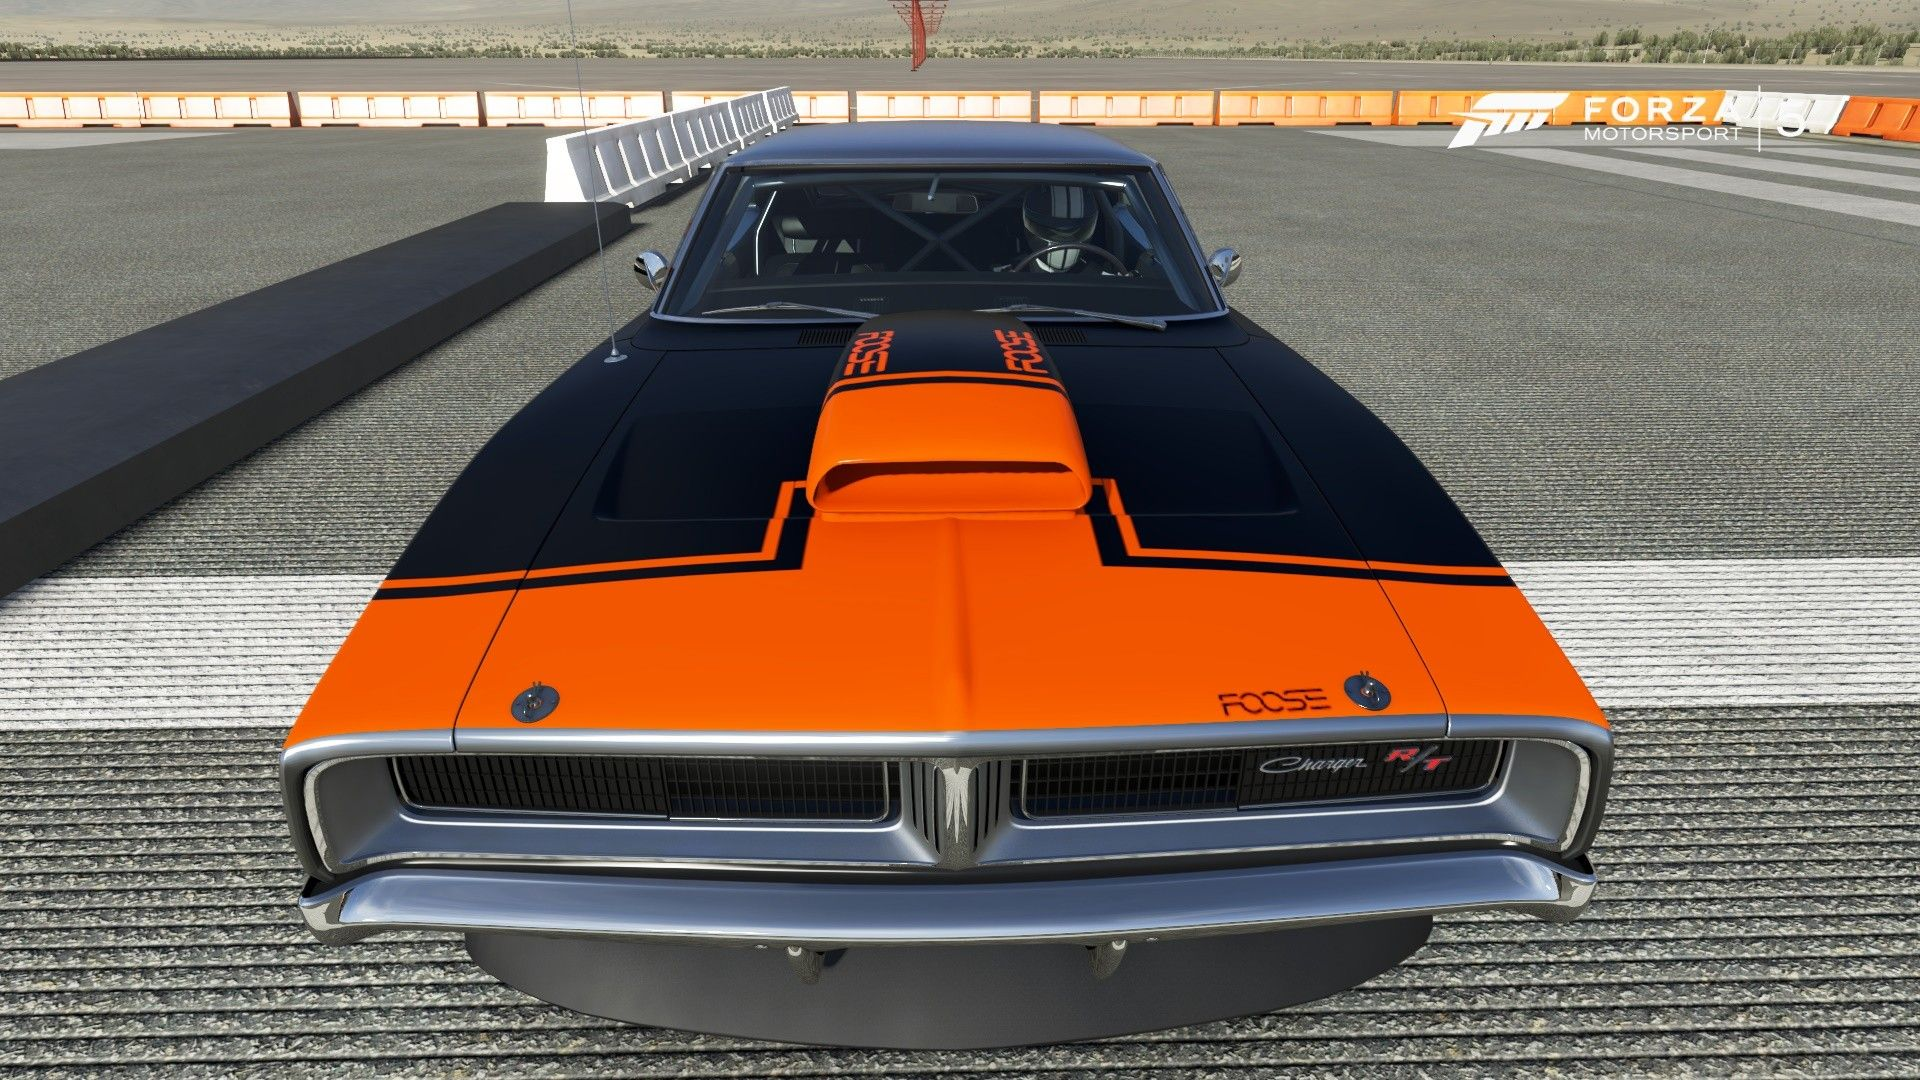 Foose charger rt forza motorsport 5 car designs and paint jobs forza 5 forza horizon 2 car designs paint jobs tutorials xbox one cars of course